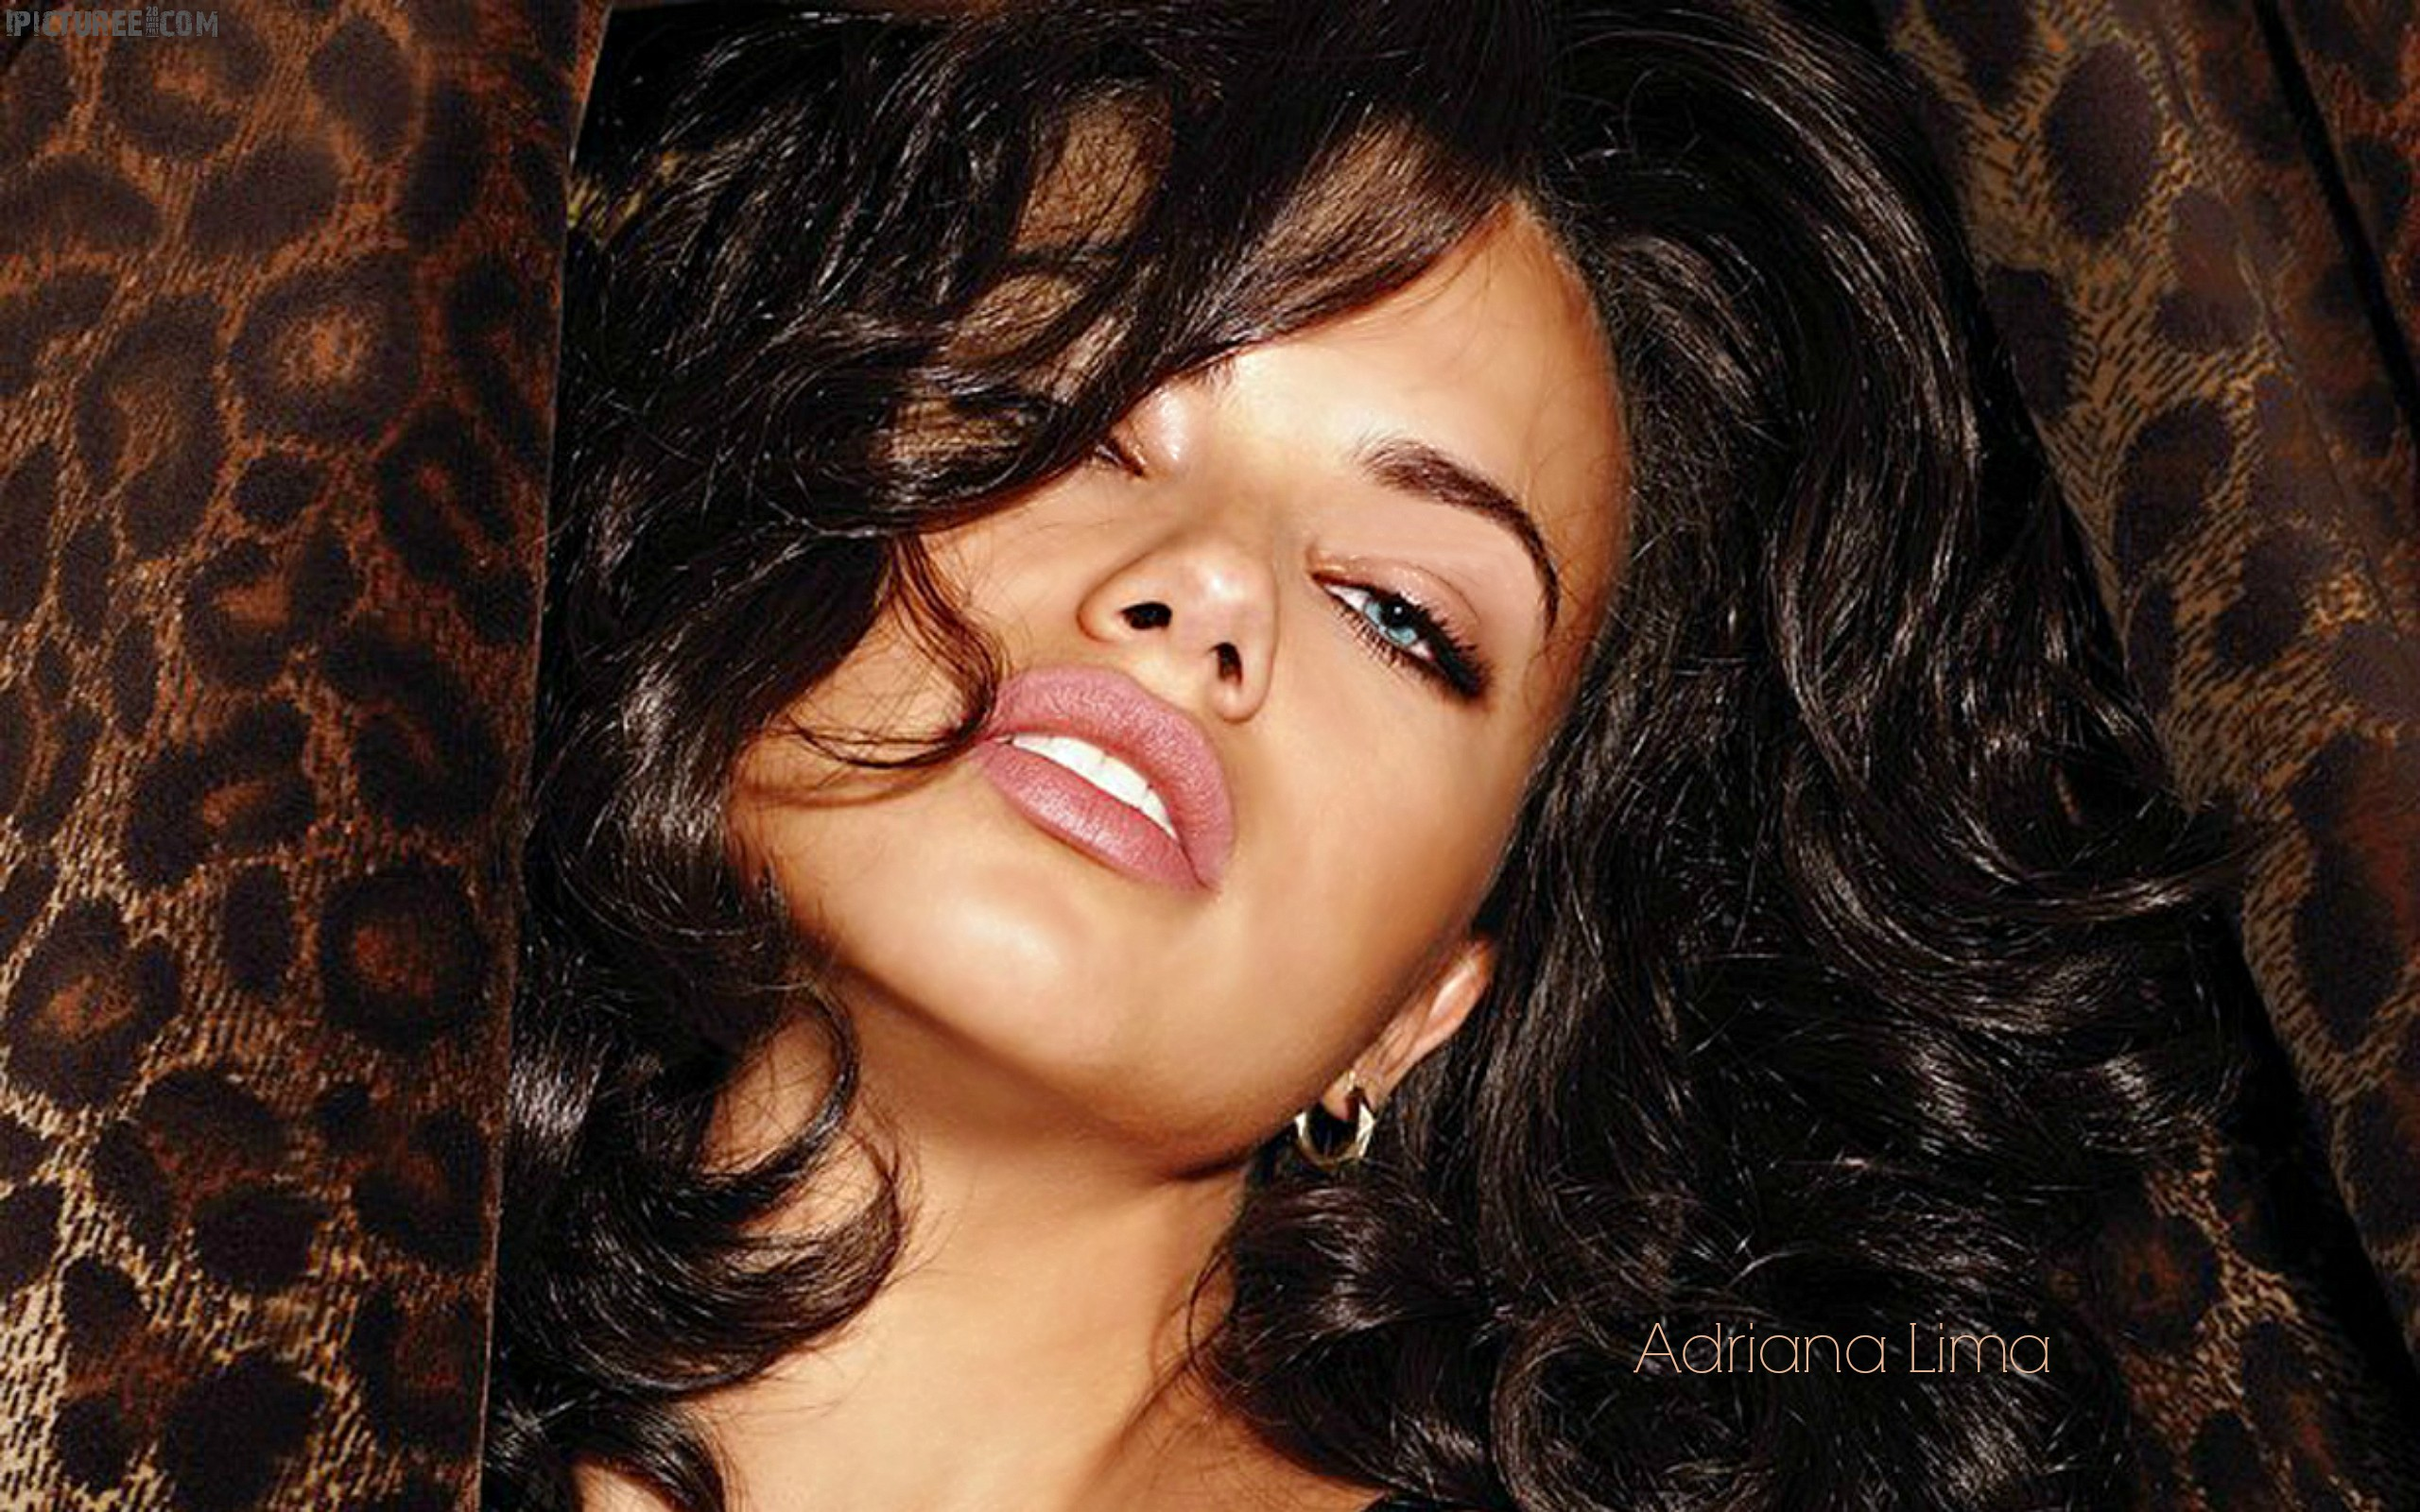 Adriana Lima wallpaper HD